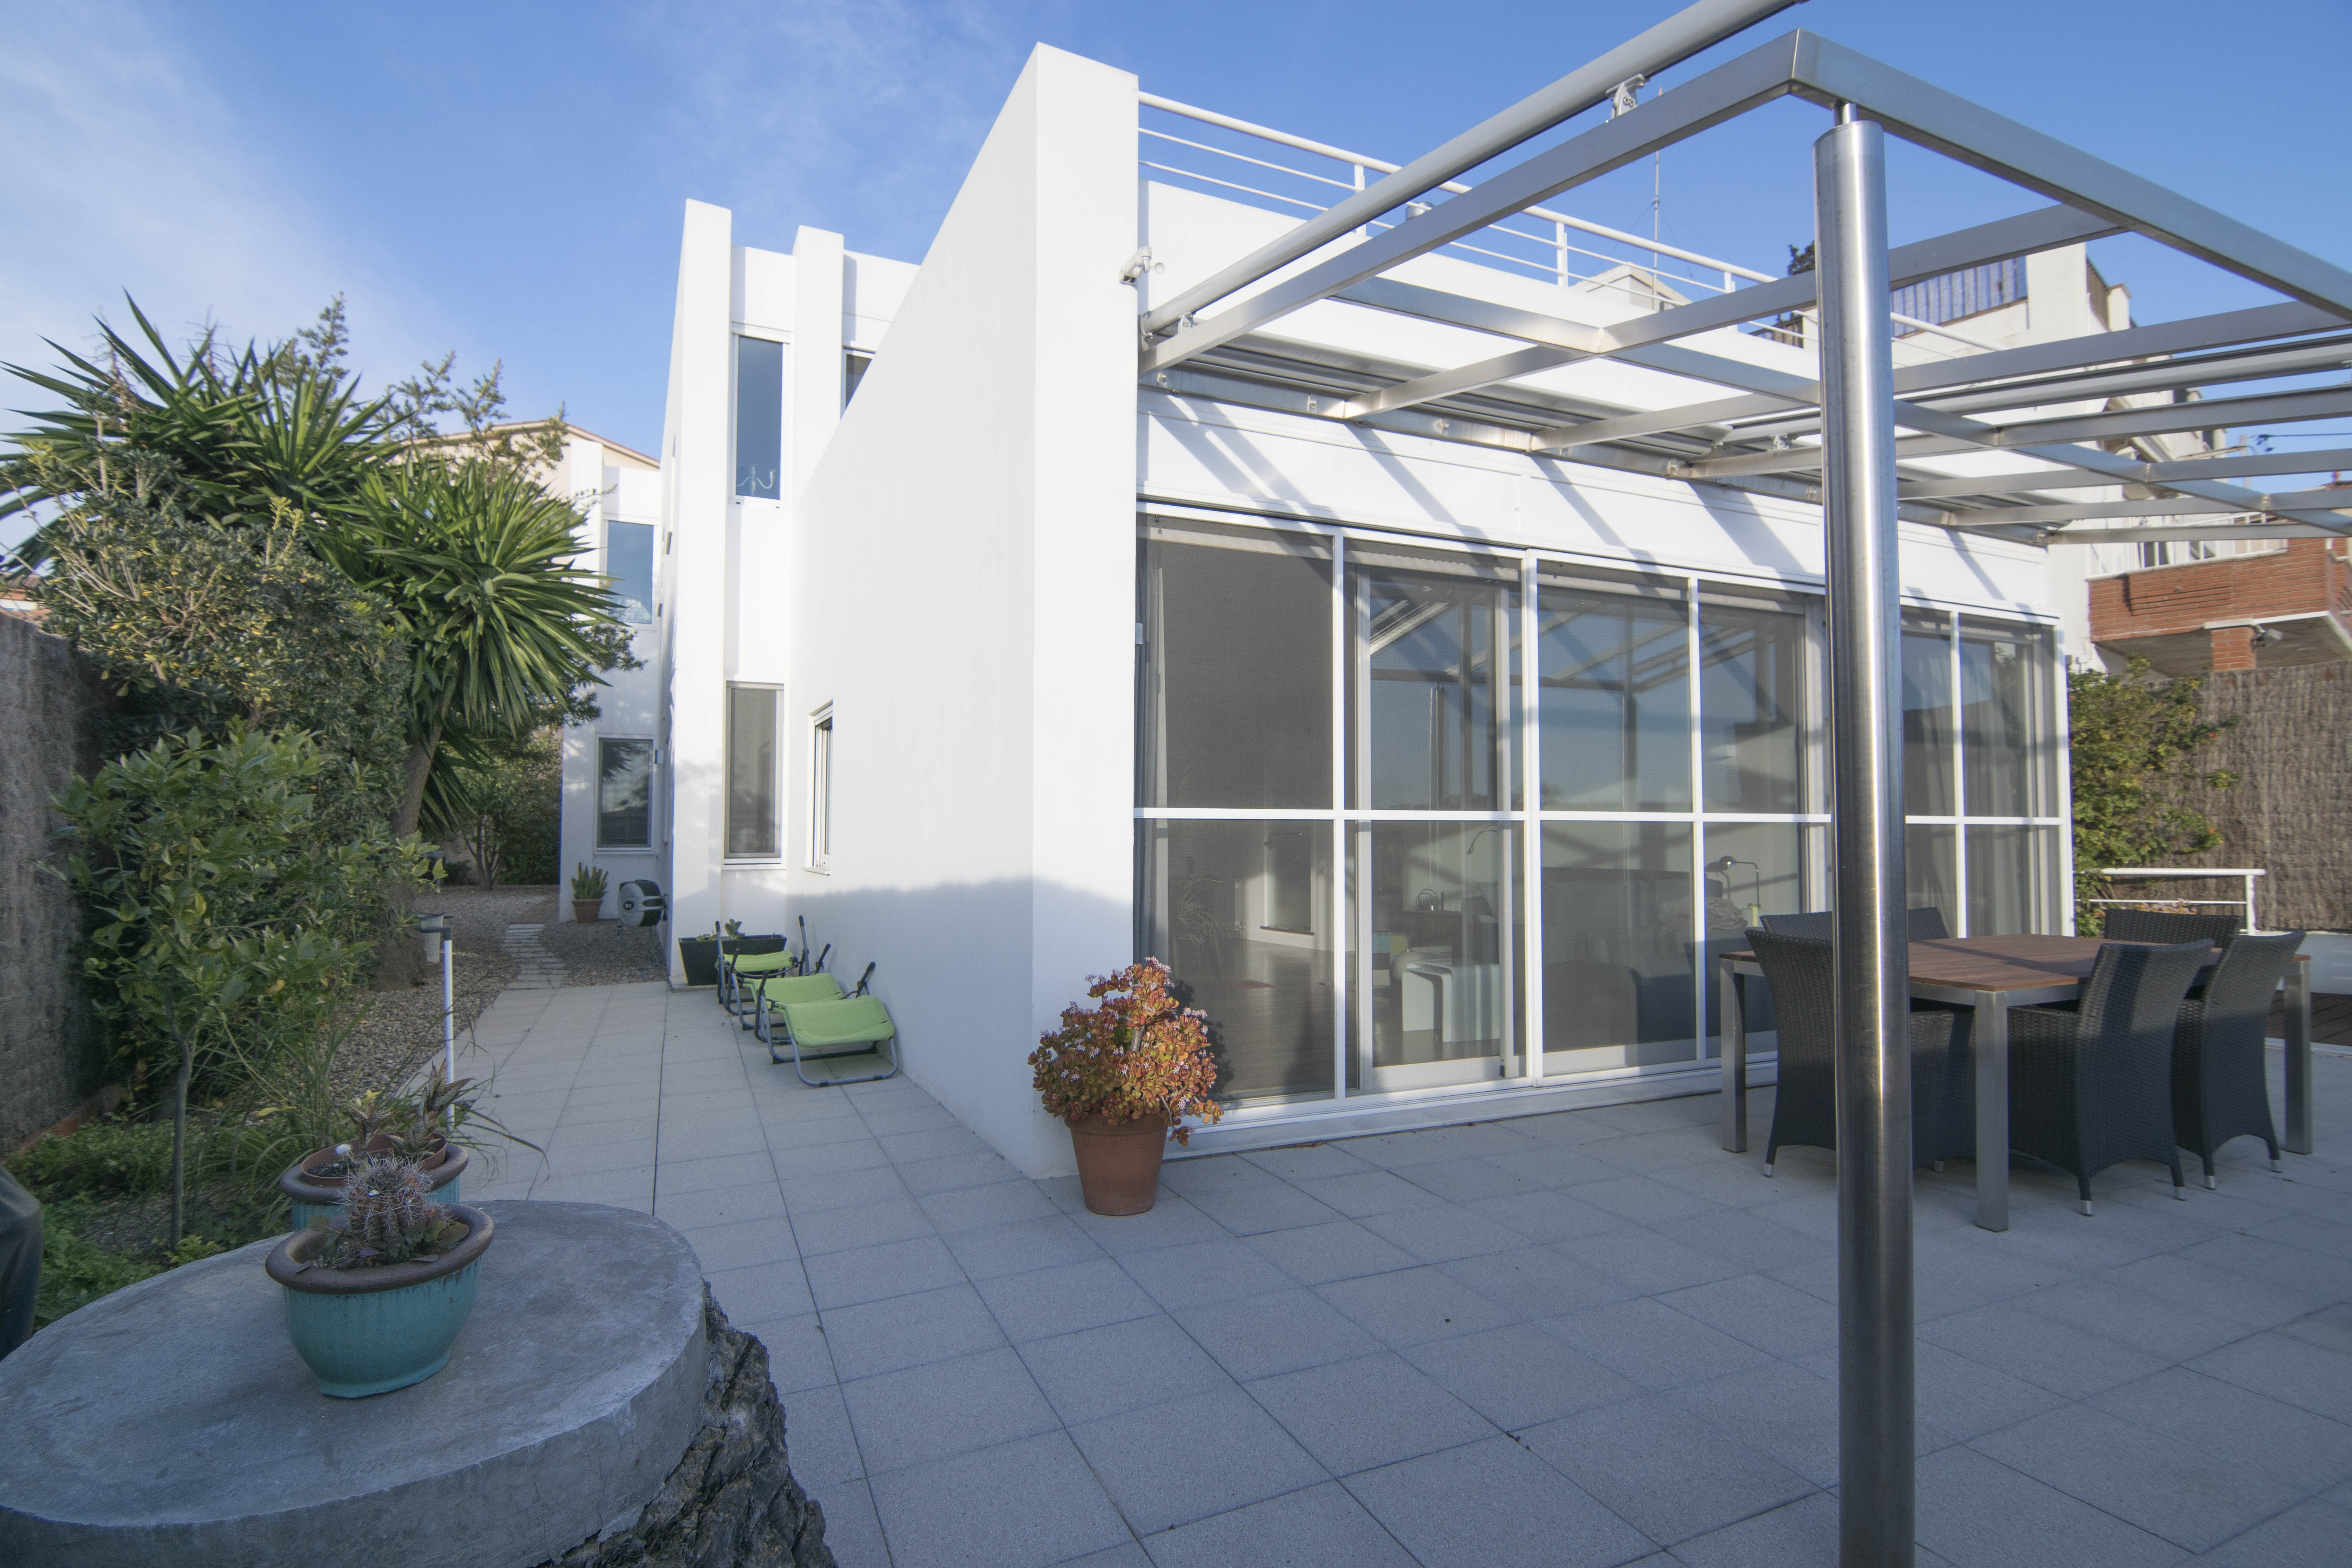 Single Family Home for Sale at Totally Reformed Chalet Within Walking Distance from the American and German ... Sant Just Desvern, Barcelona, 08960 Spain